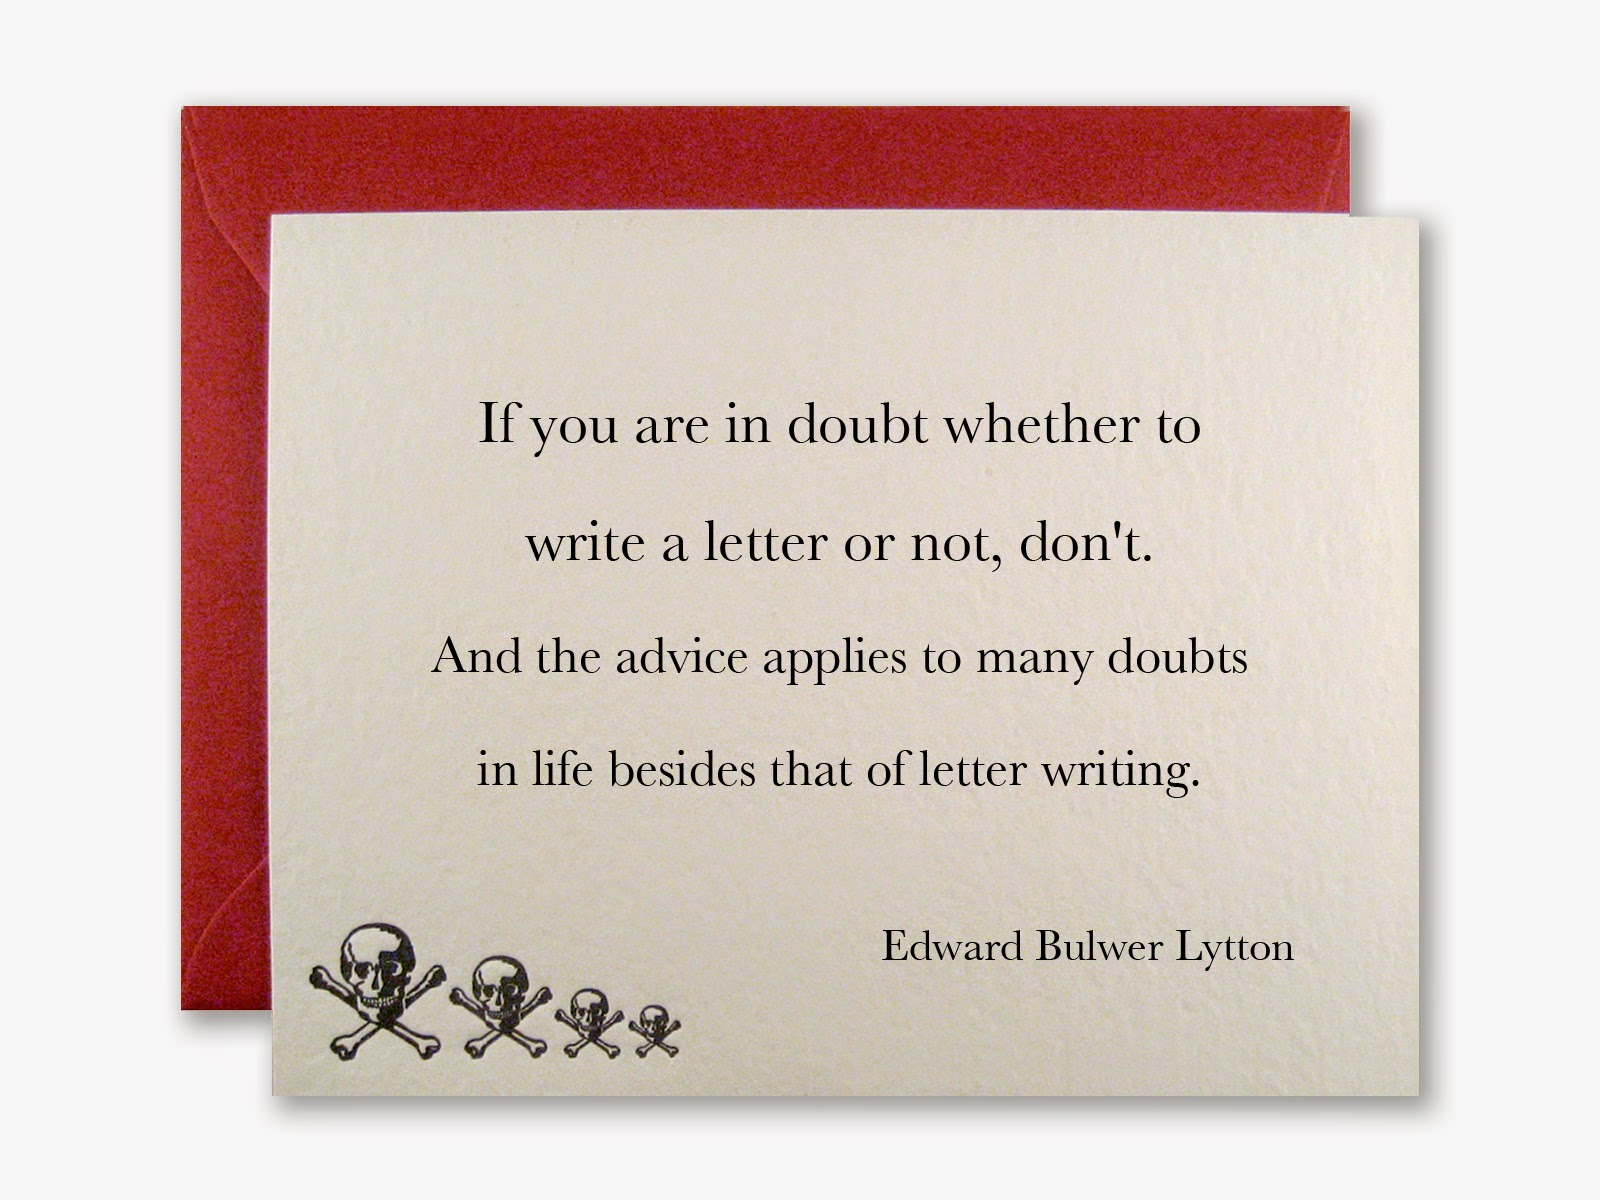 If you are in doubt whether to write a letter or not, don't. And the advice applies to many doubts in life besides that of letter writing. - Edward Bulwer Lytton